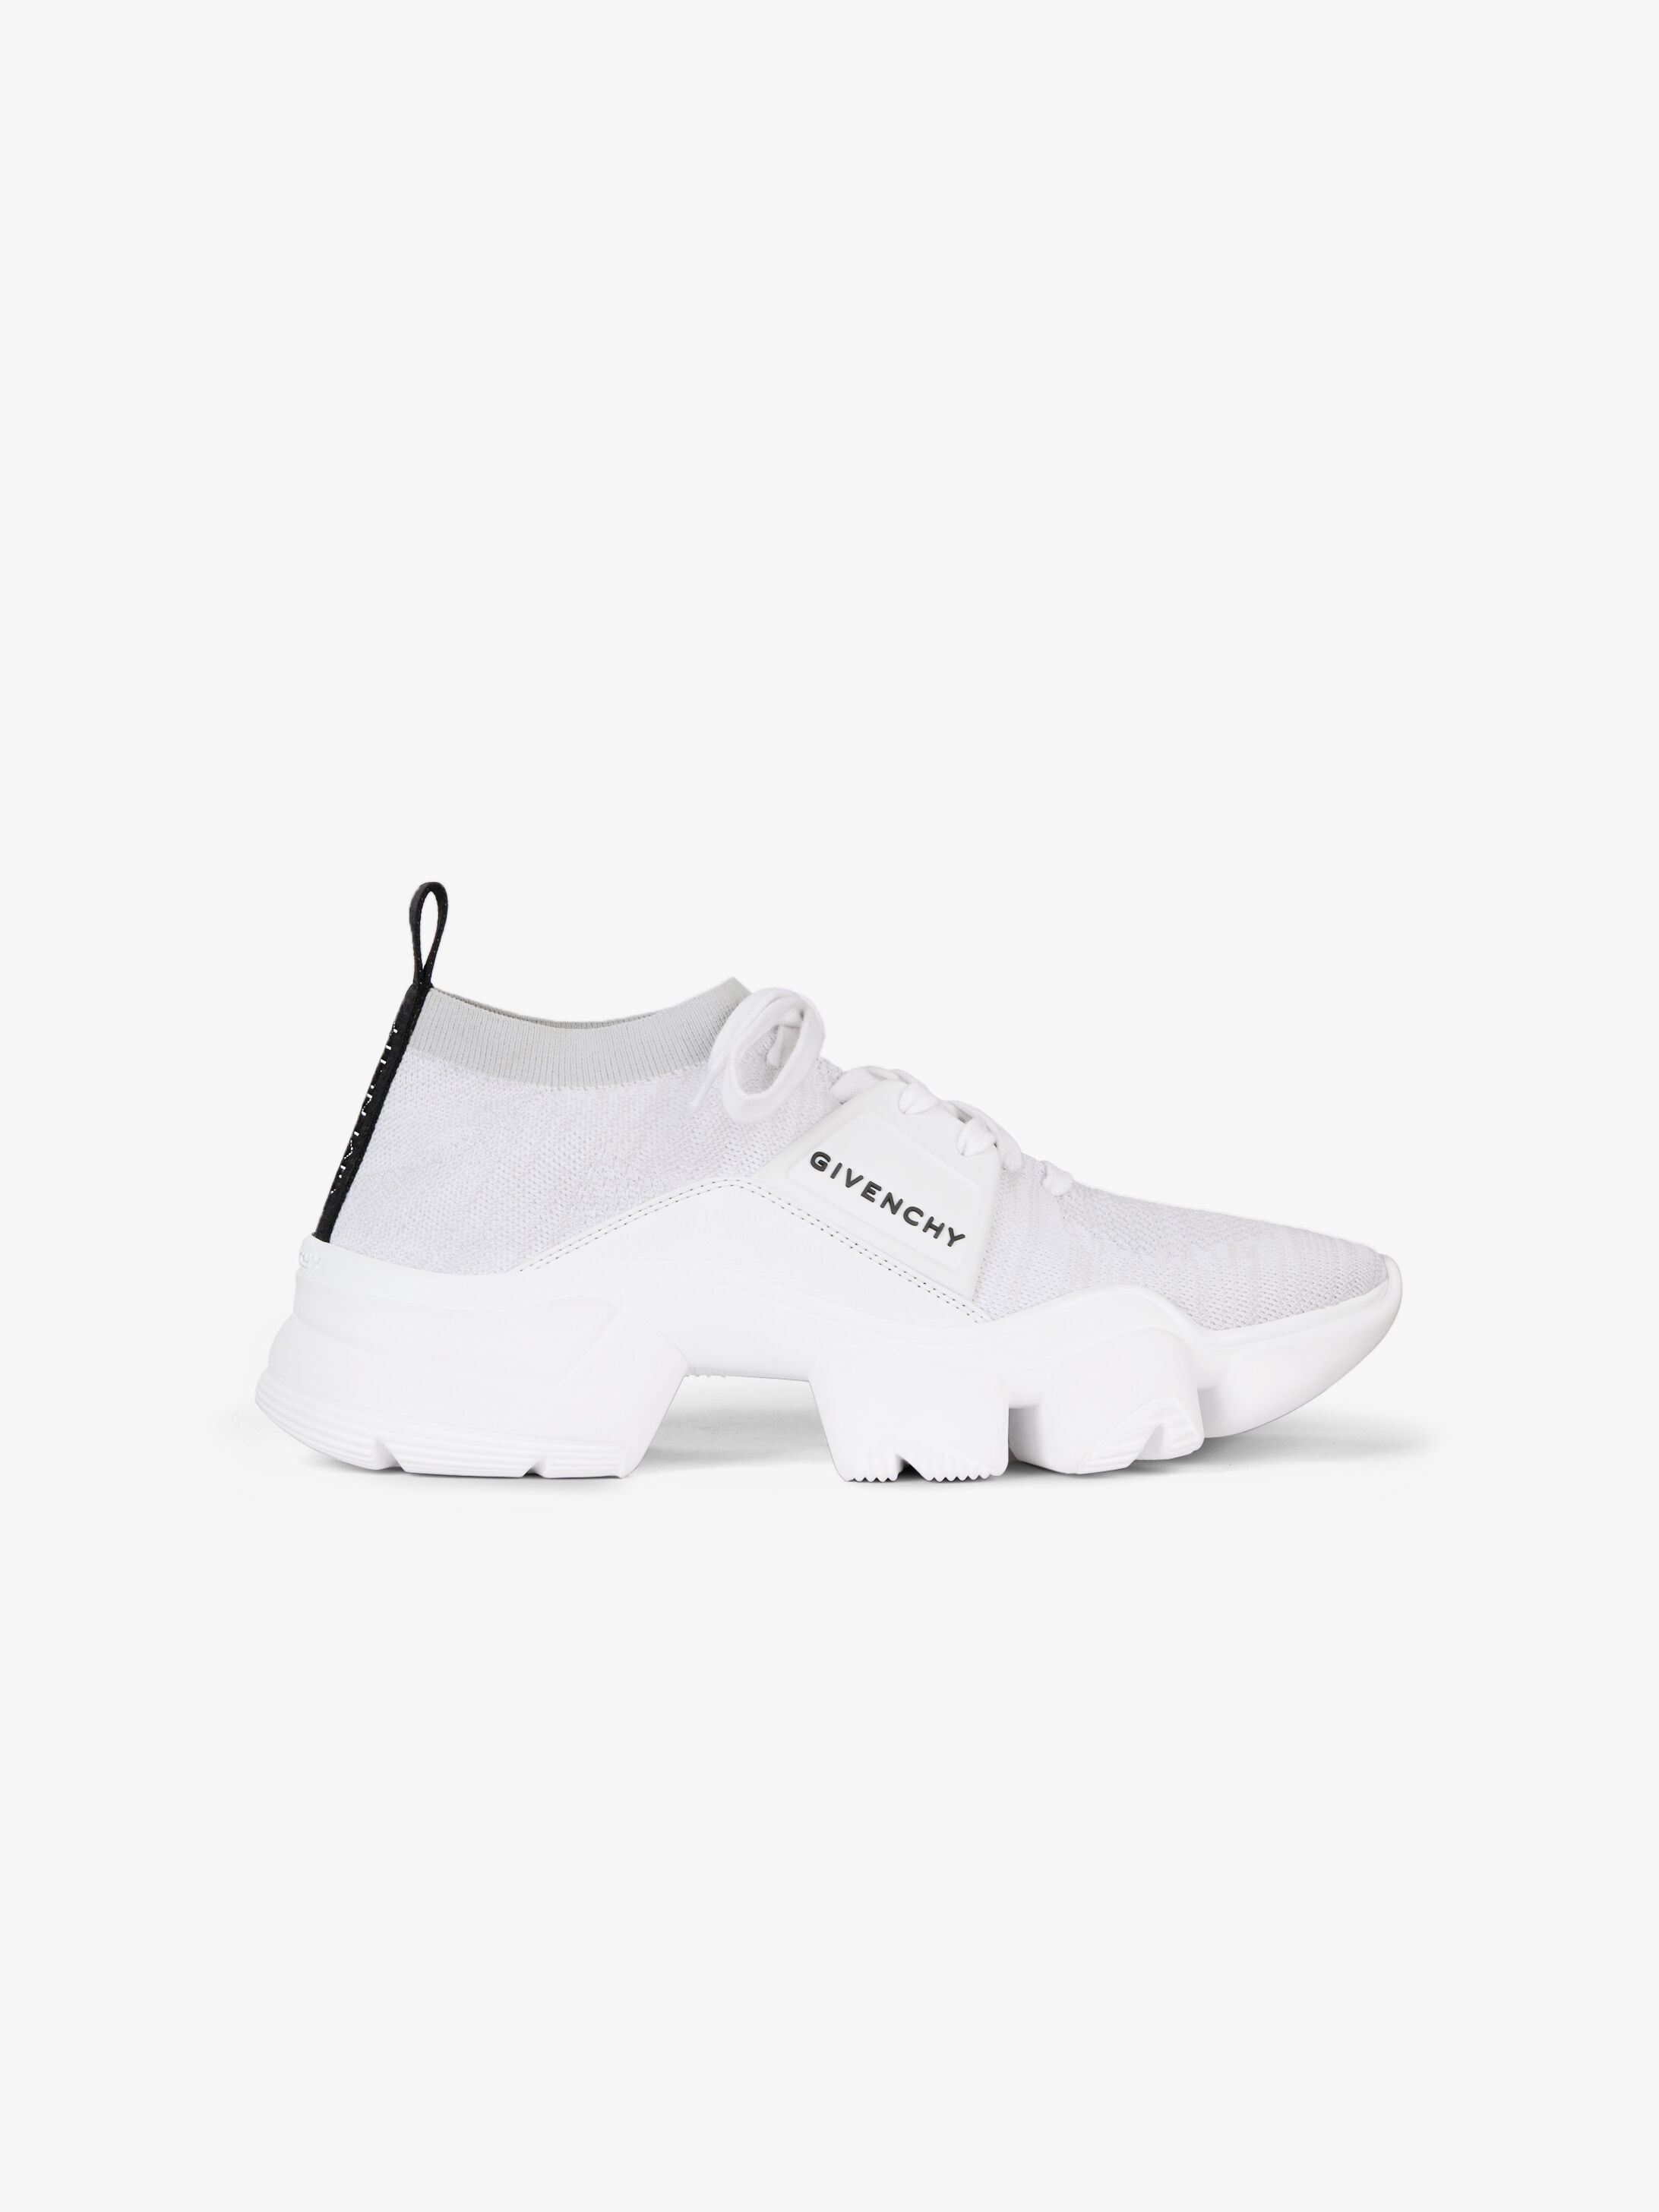 dc376a354 Men's Sneakers collection by Givenchy.   GIVENCHY Paris